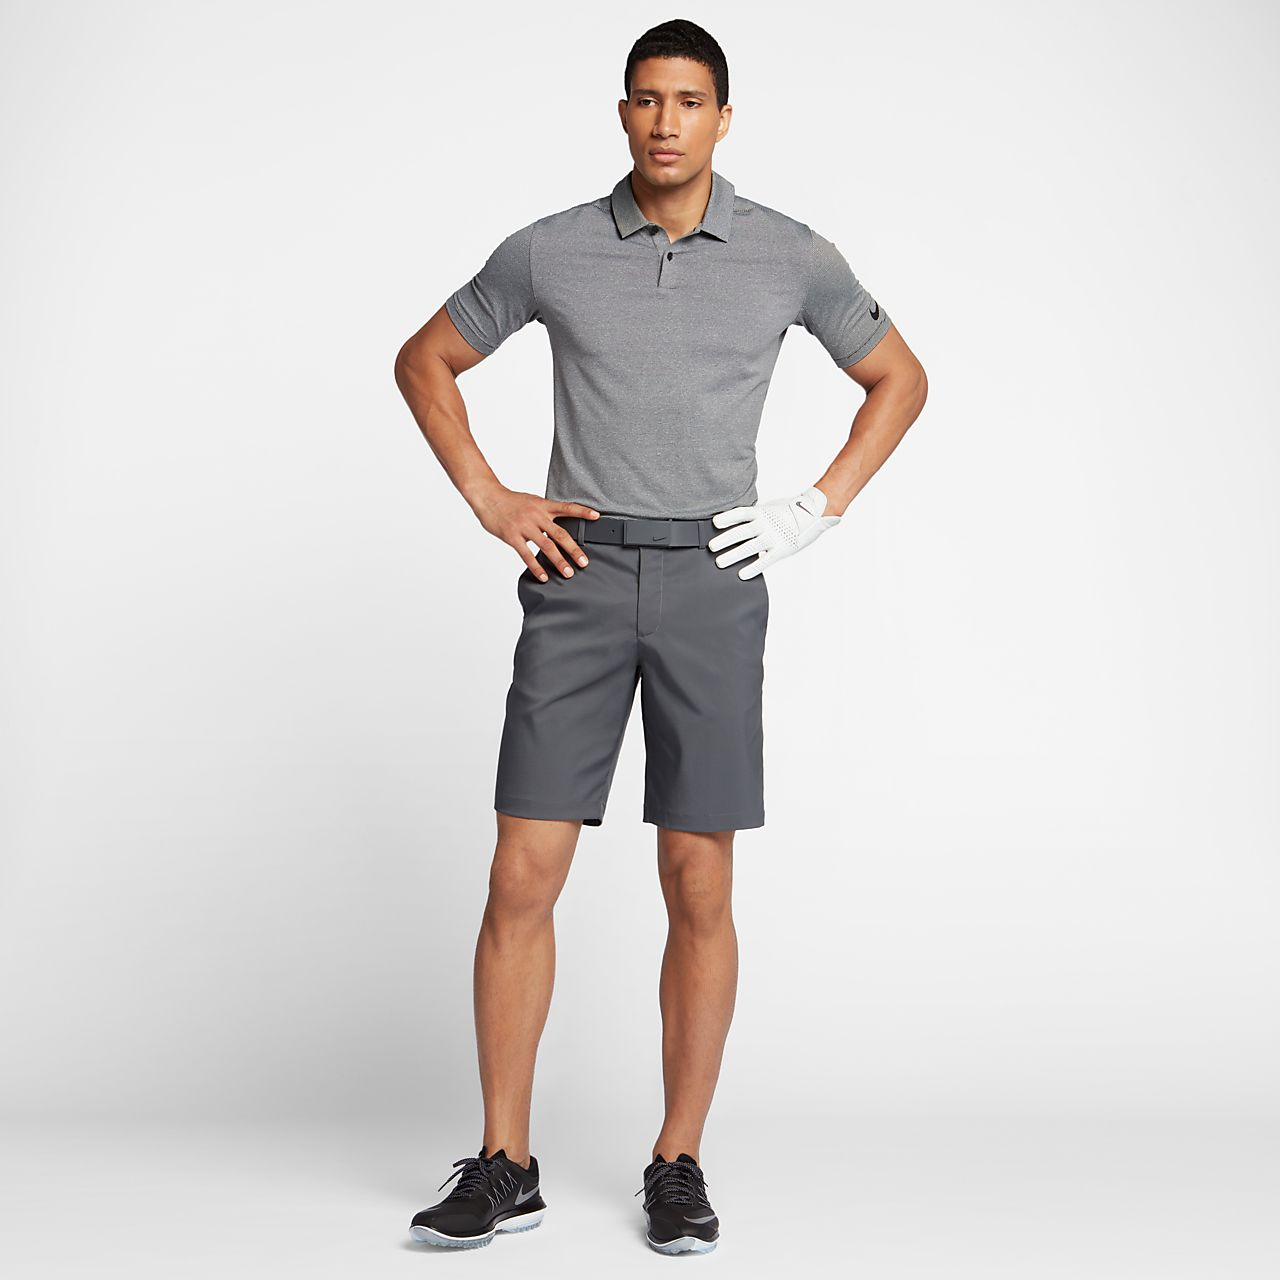 cheap for discount 7d587 1aa15 Golf Shorts Nike Flat Front Men s 10.5